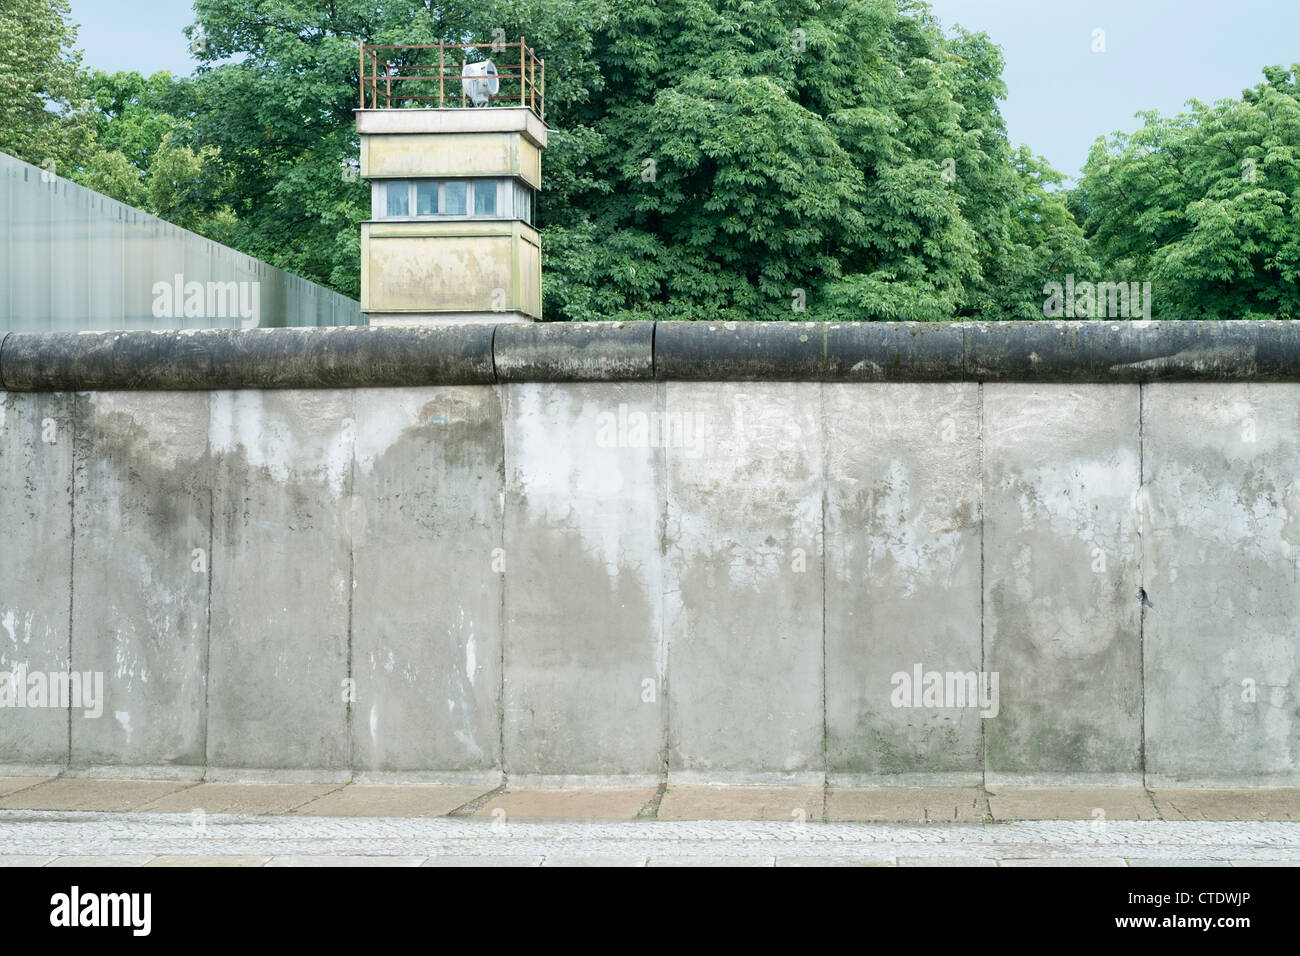 La section de mur de Berlin d'origine à Bernauer Strasse à Berlin Allemagne Photo Stock